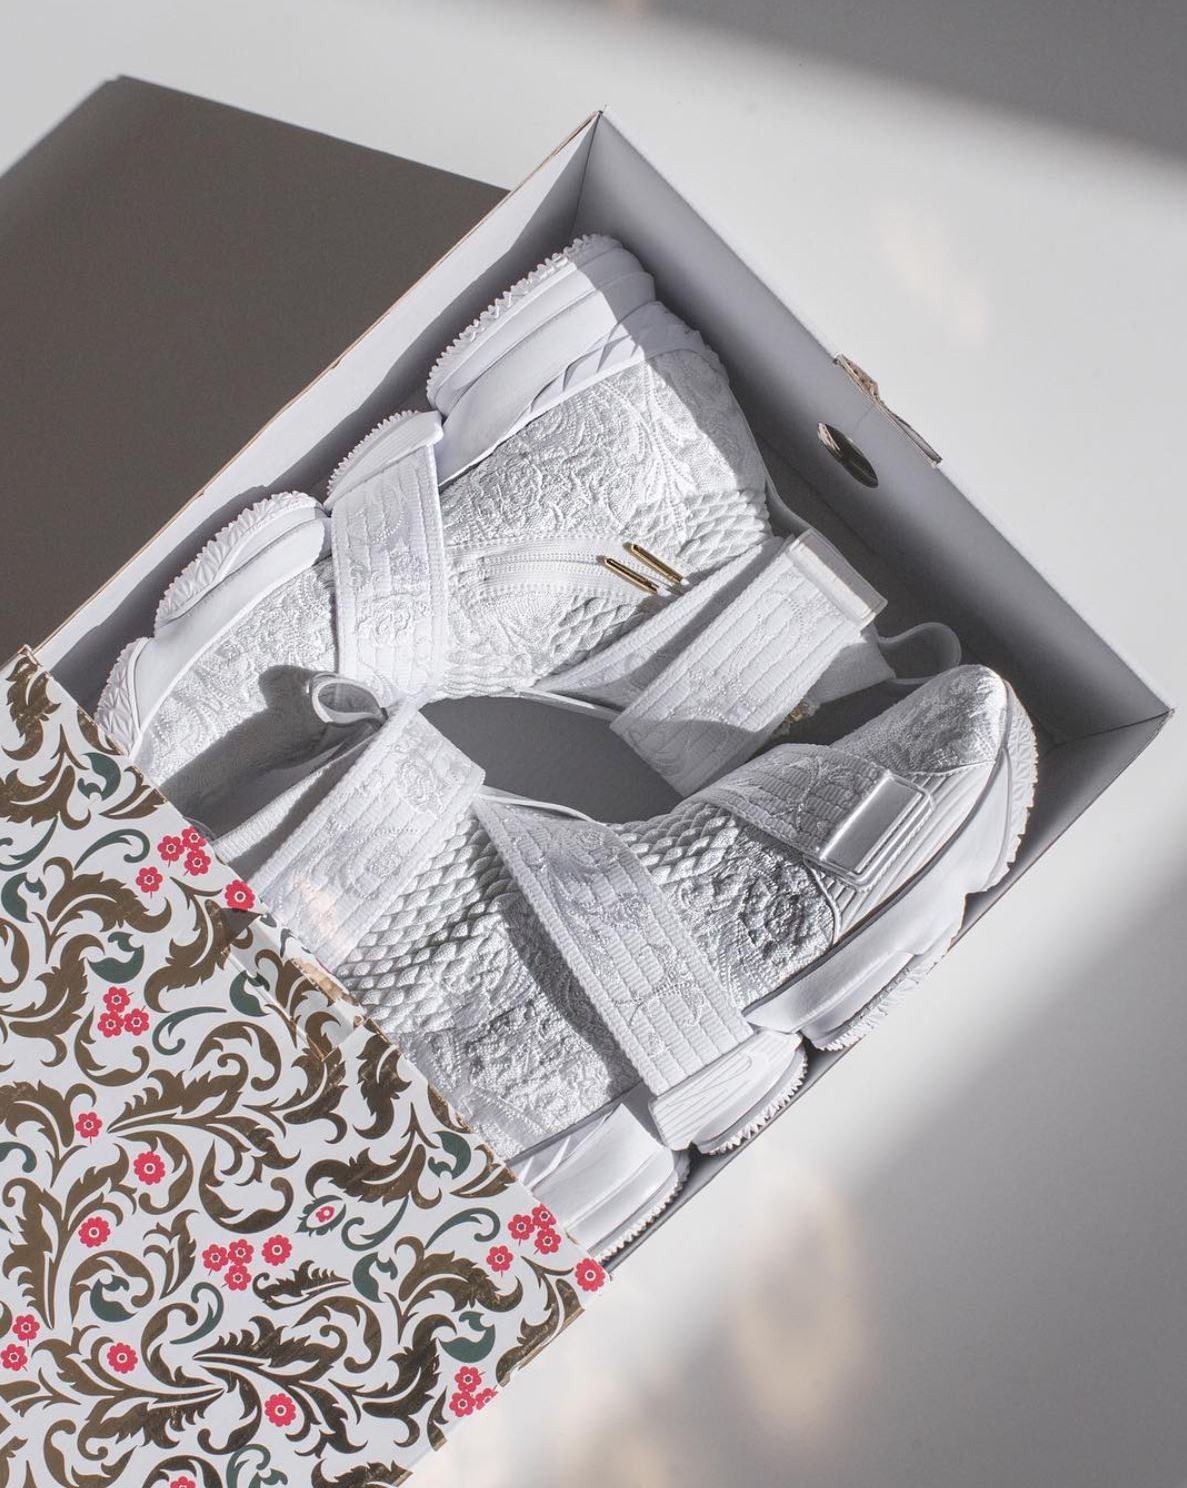 kith x lebron 15 city of angels